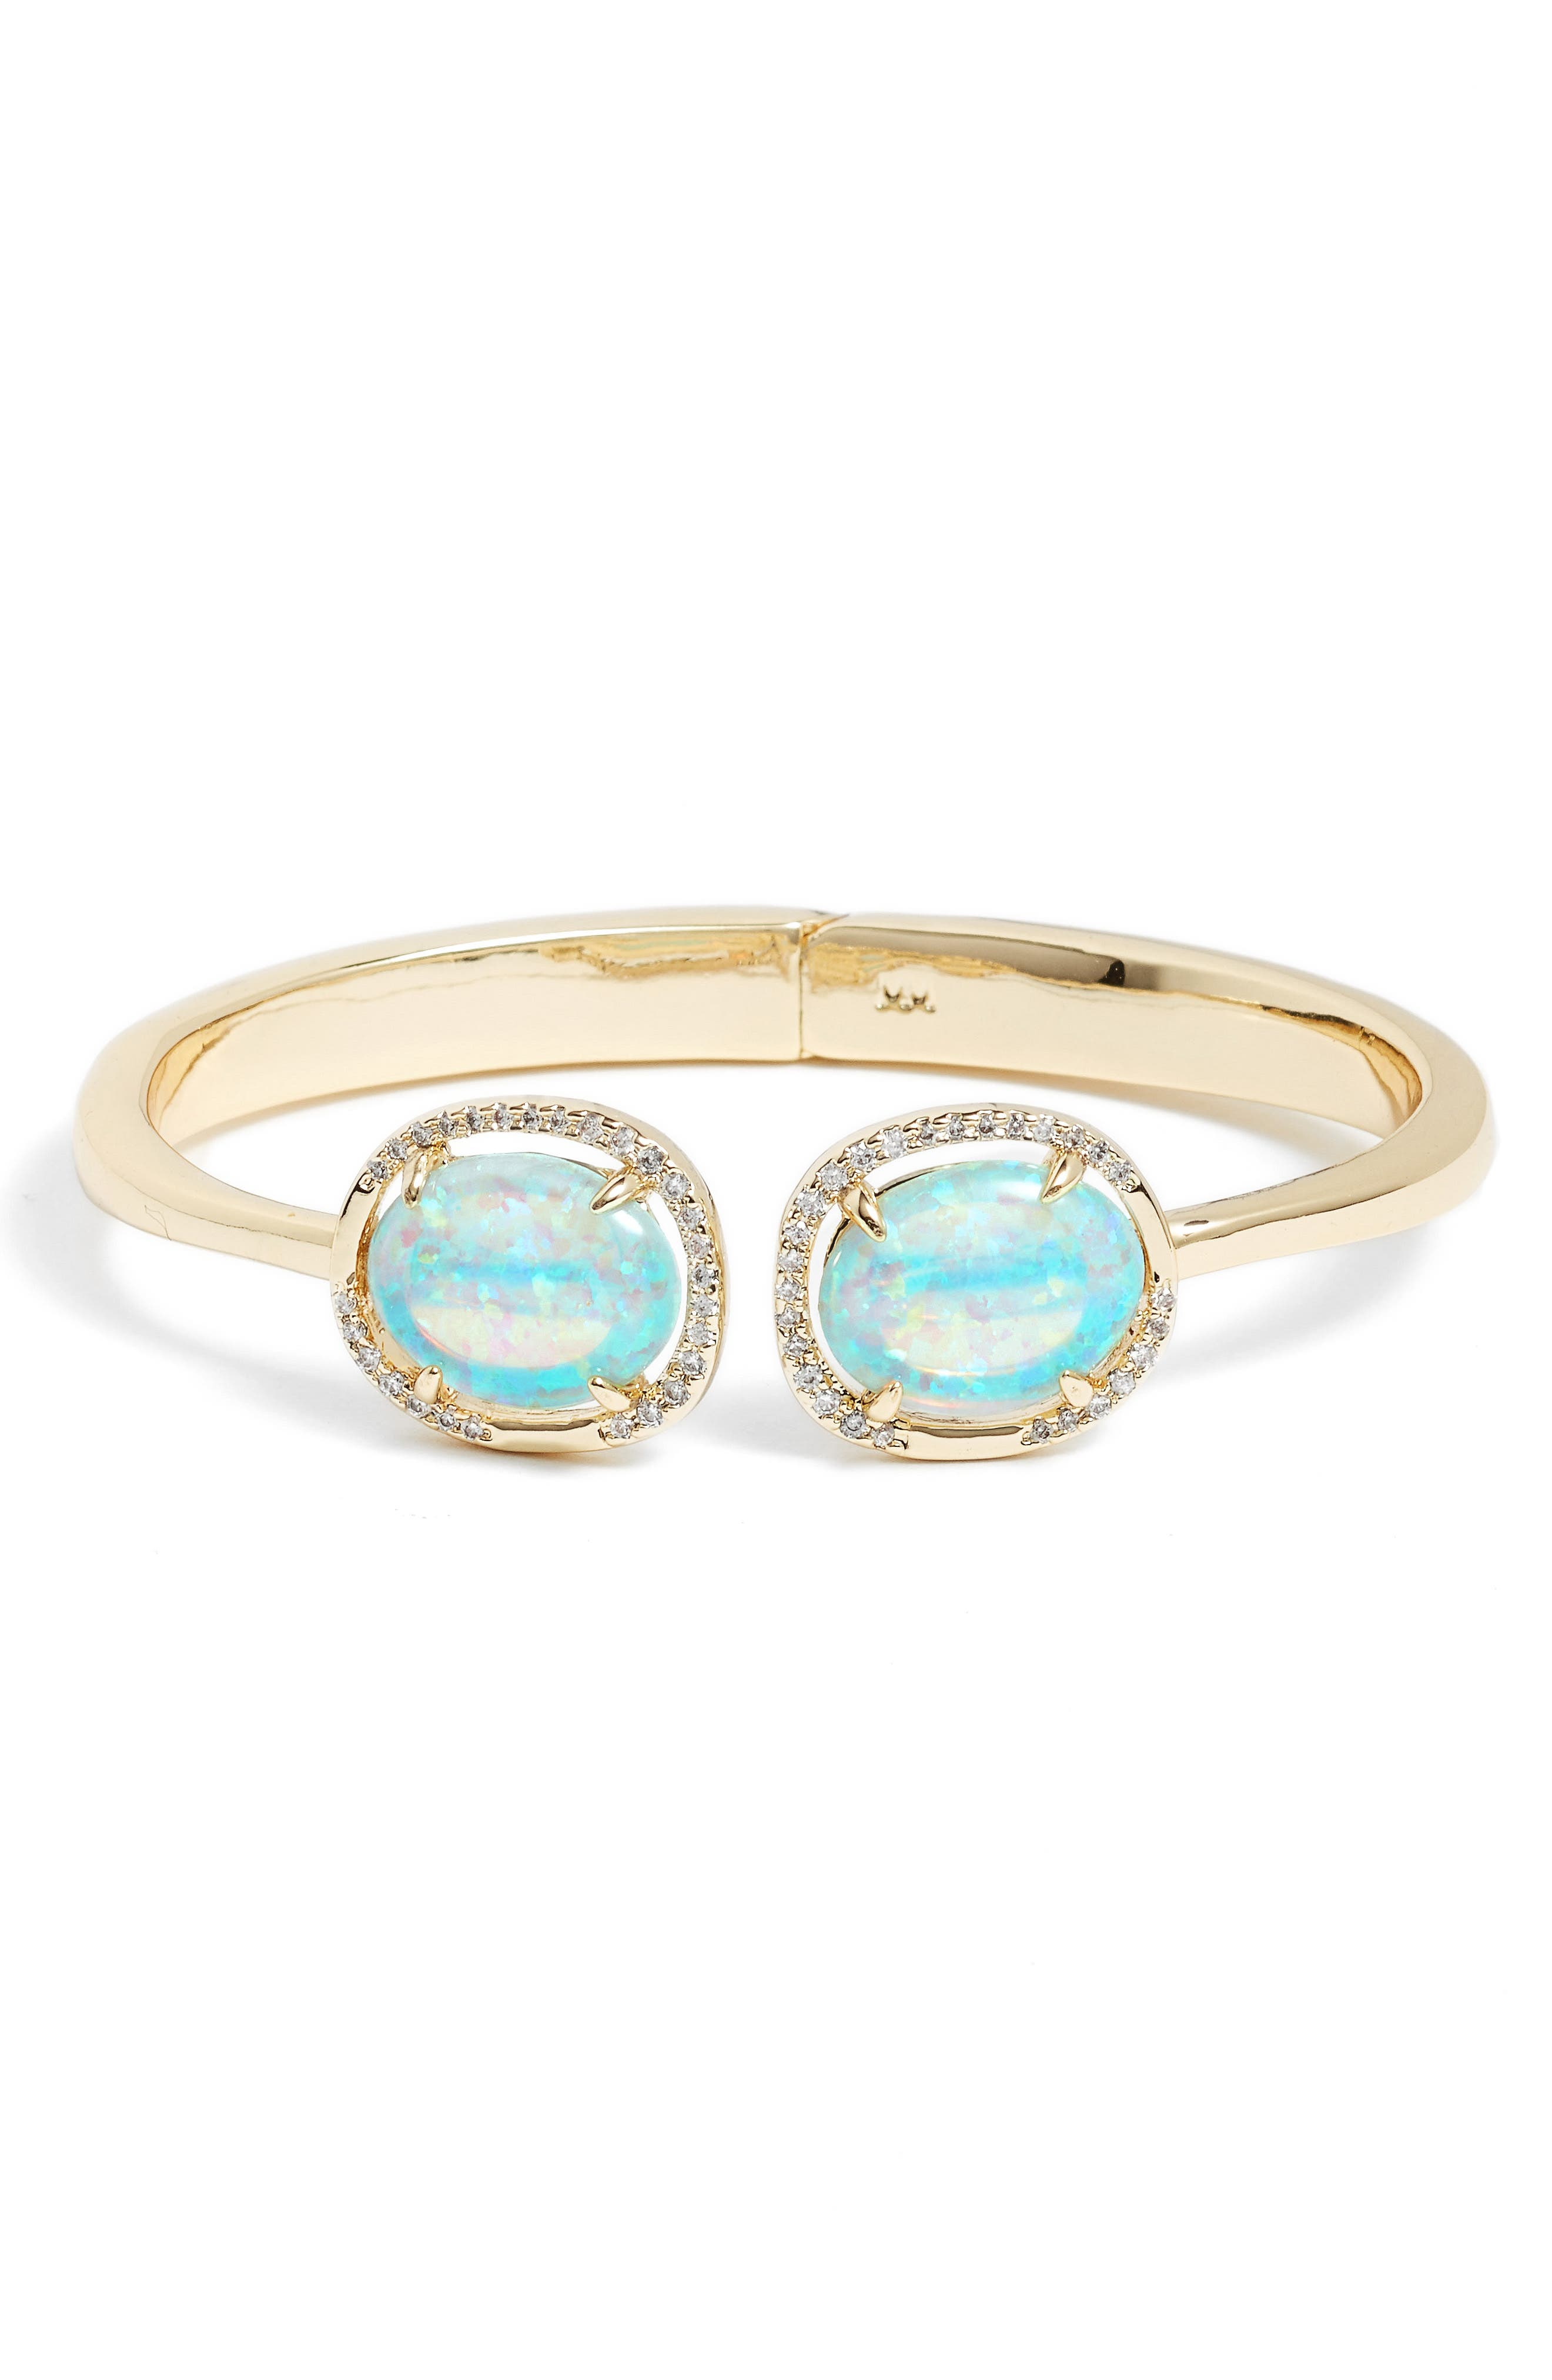 Arabella Opal Cuff Bracelet,                             Main thumbnail 1, color,                             Gold Opal/ White Crystal